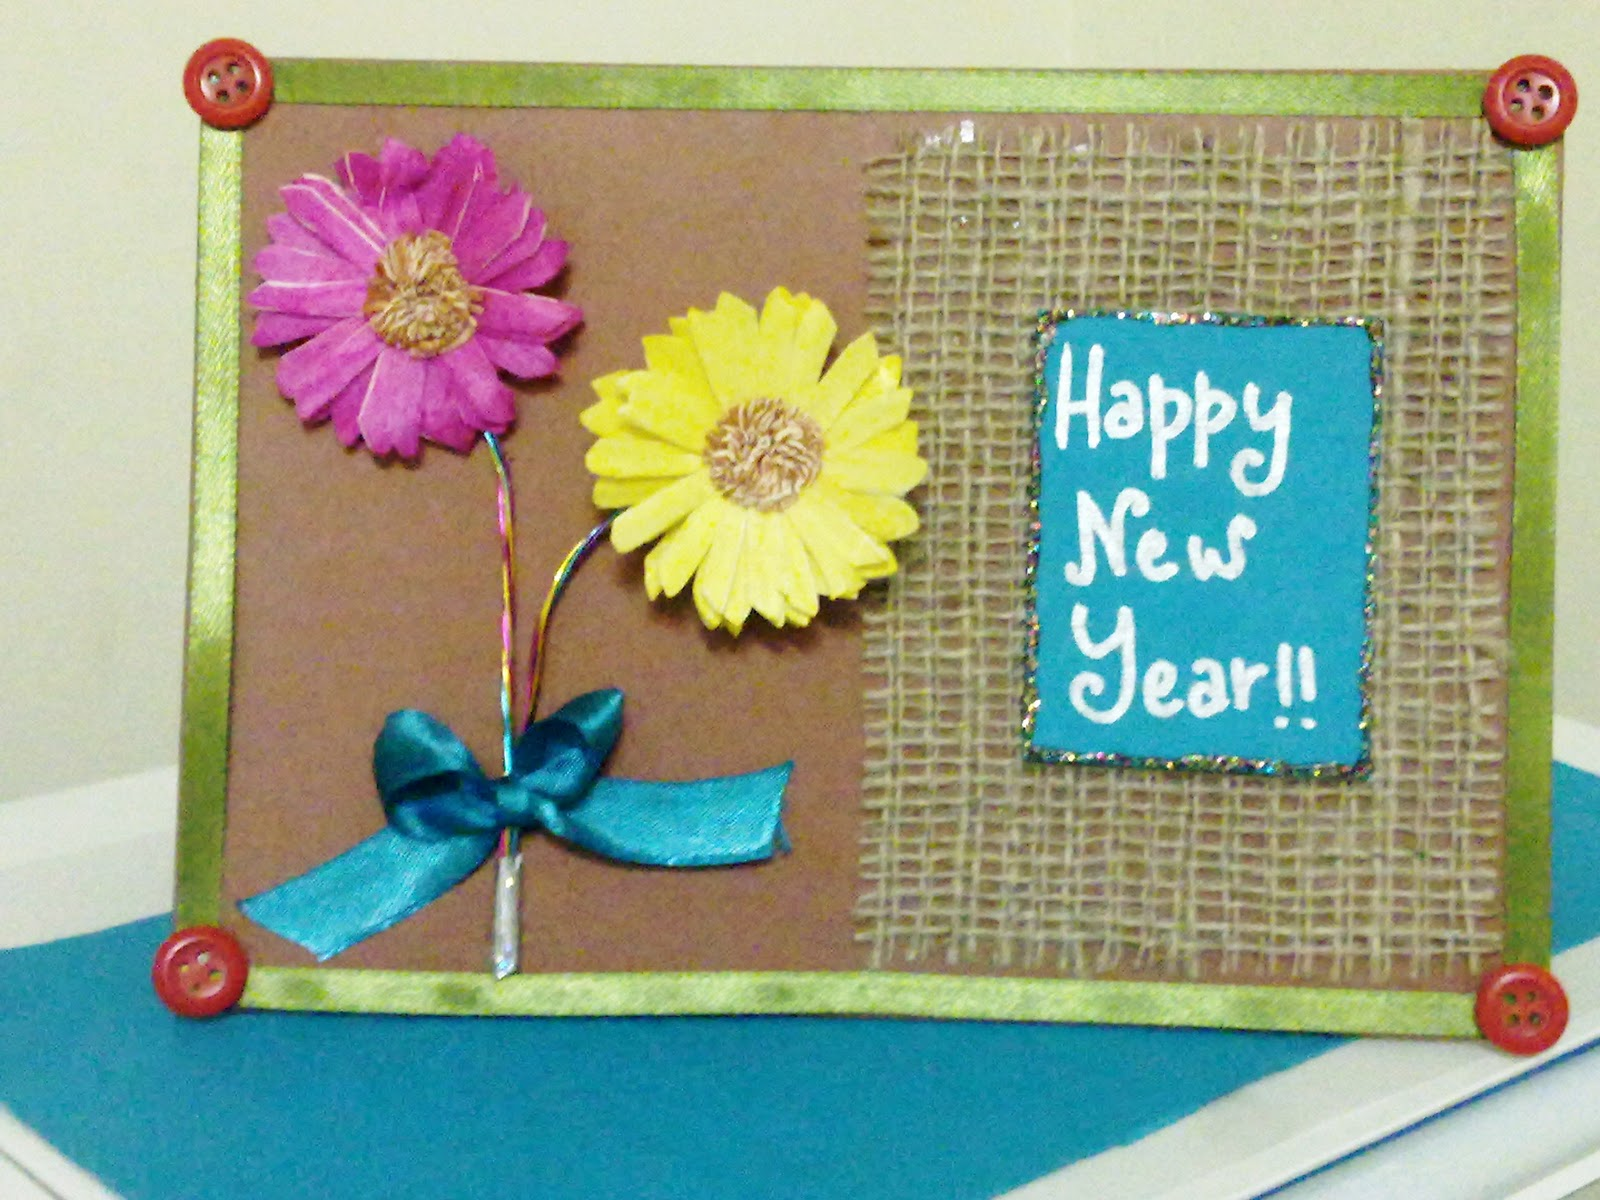 New Year Card Photo Vatozozdevelopment